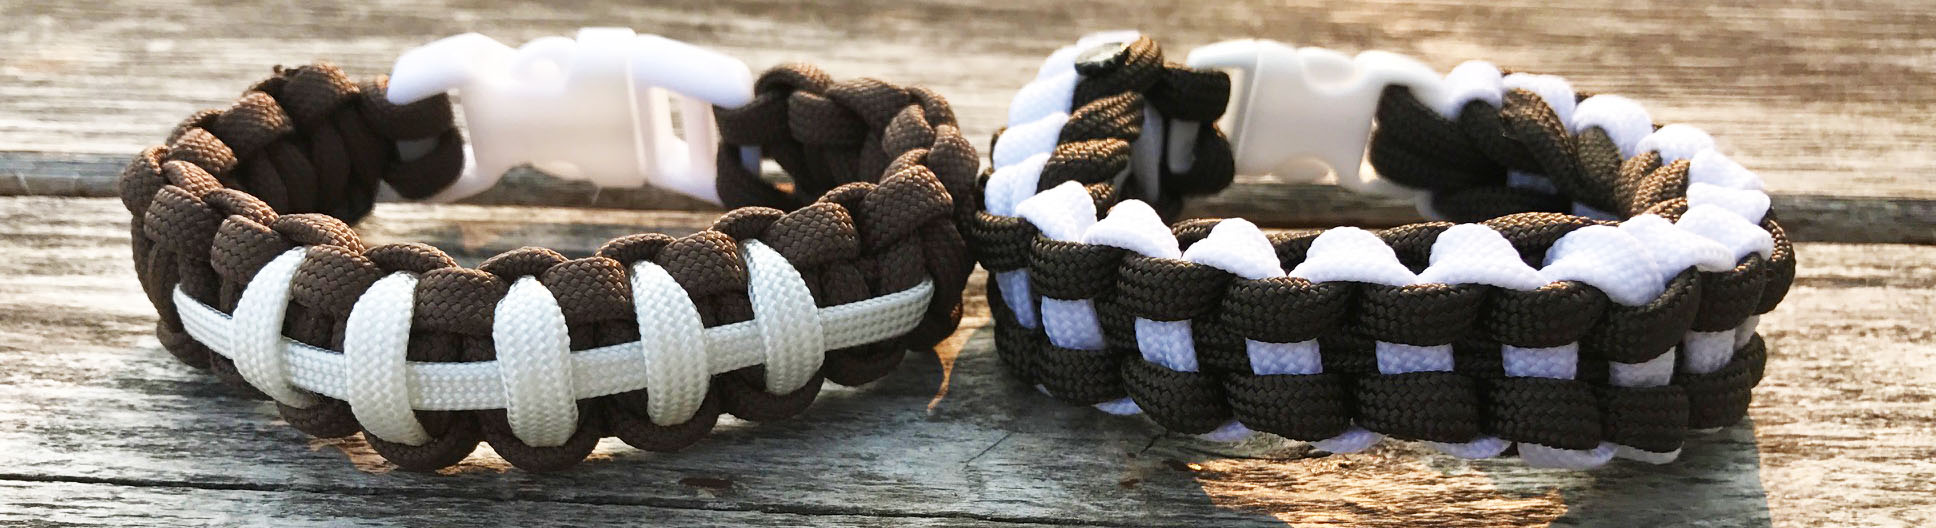 Football theme paracord bracelets